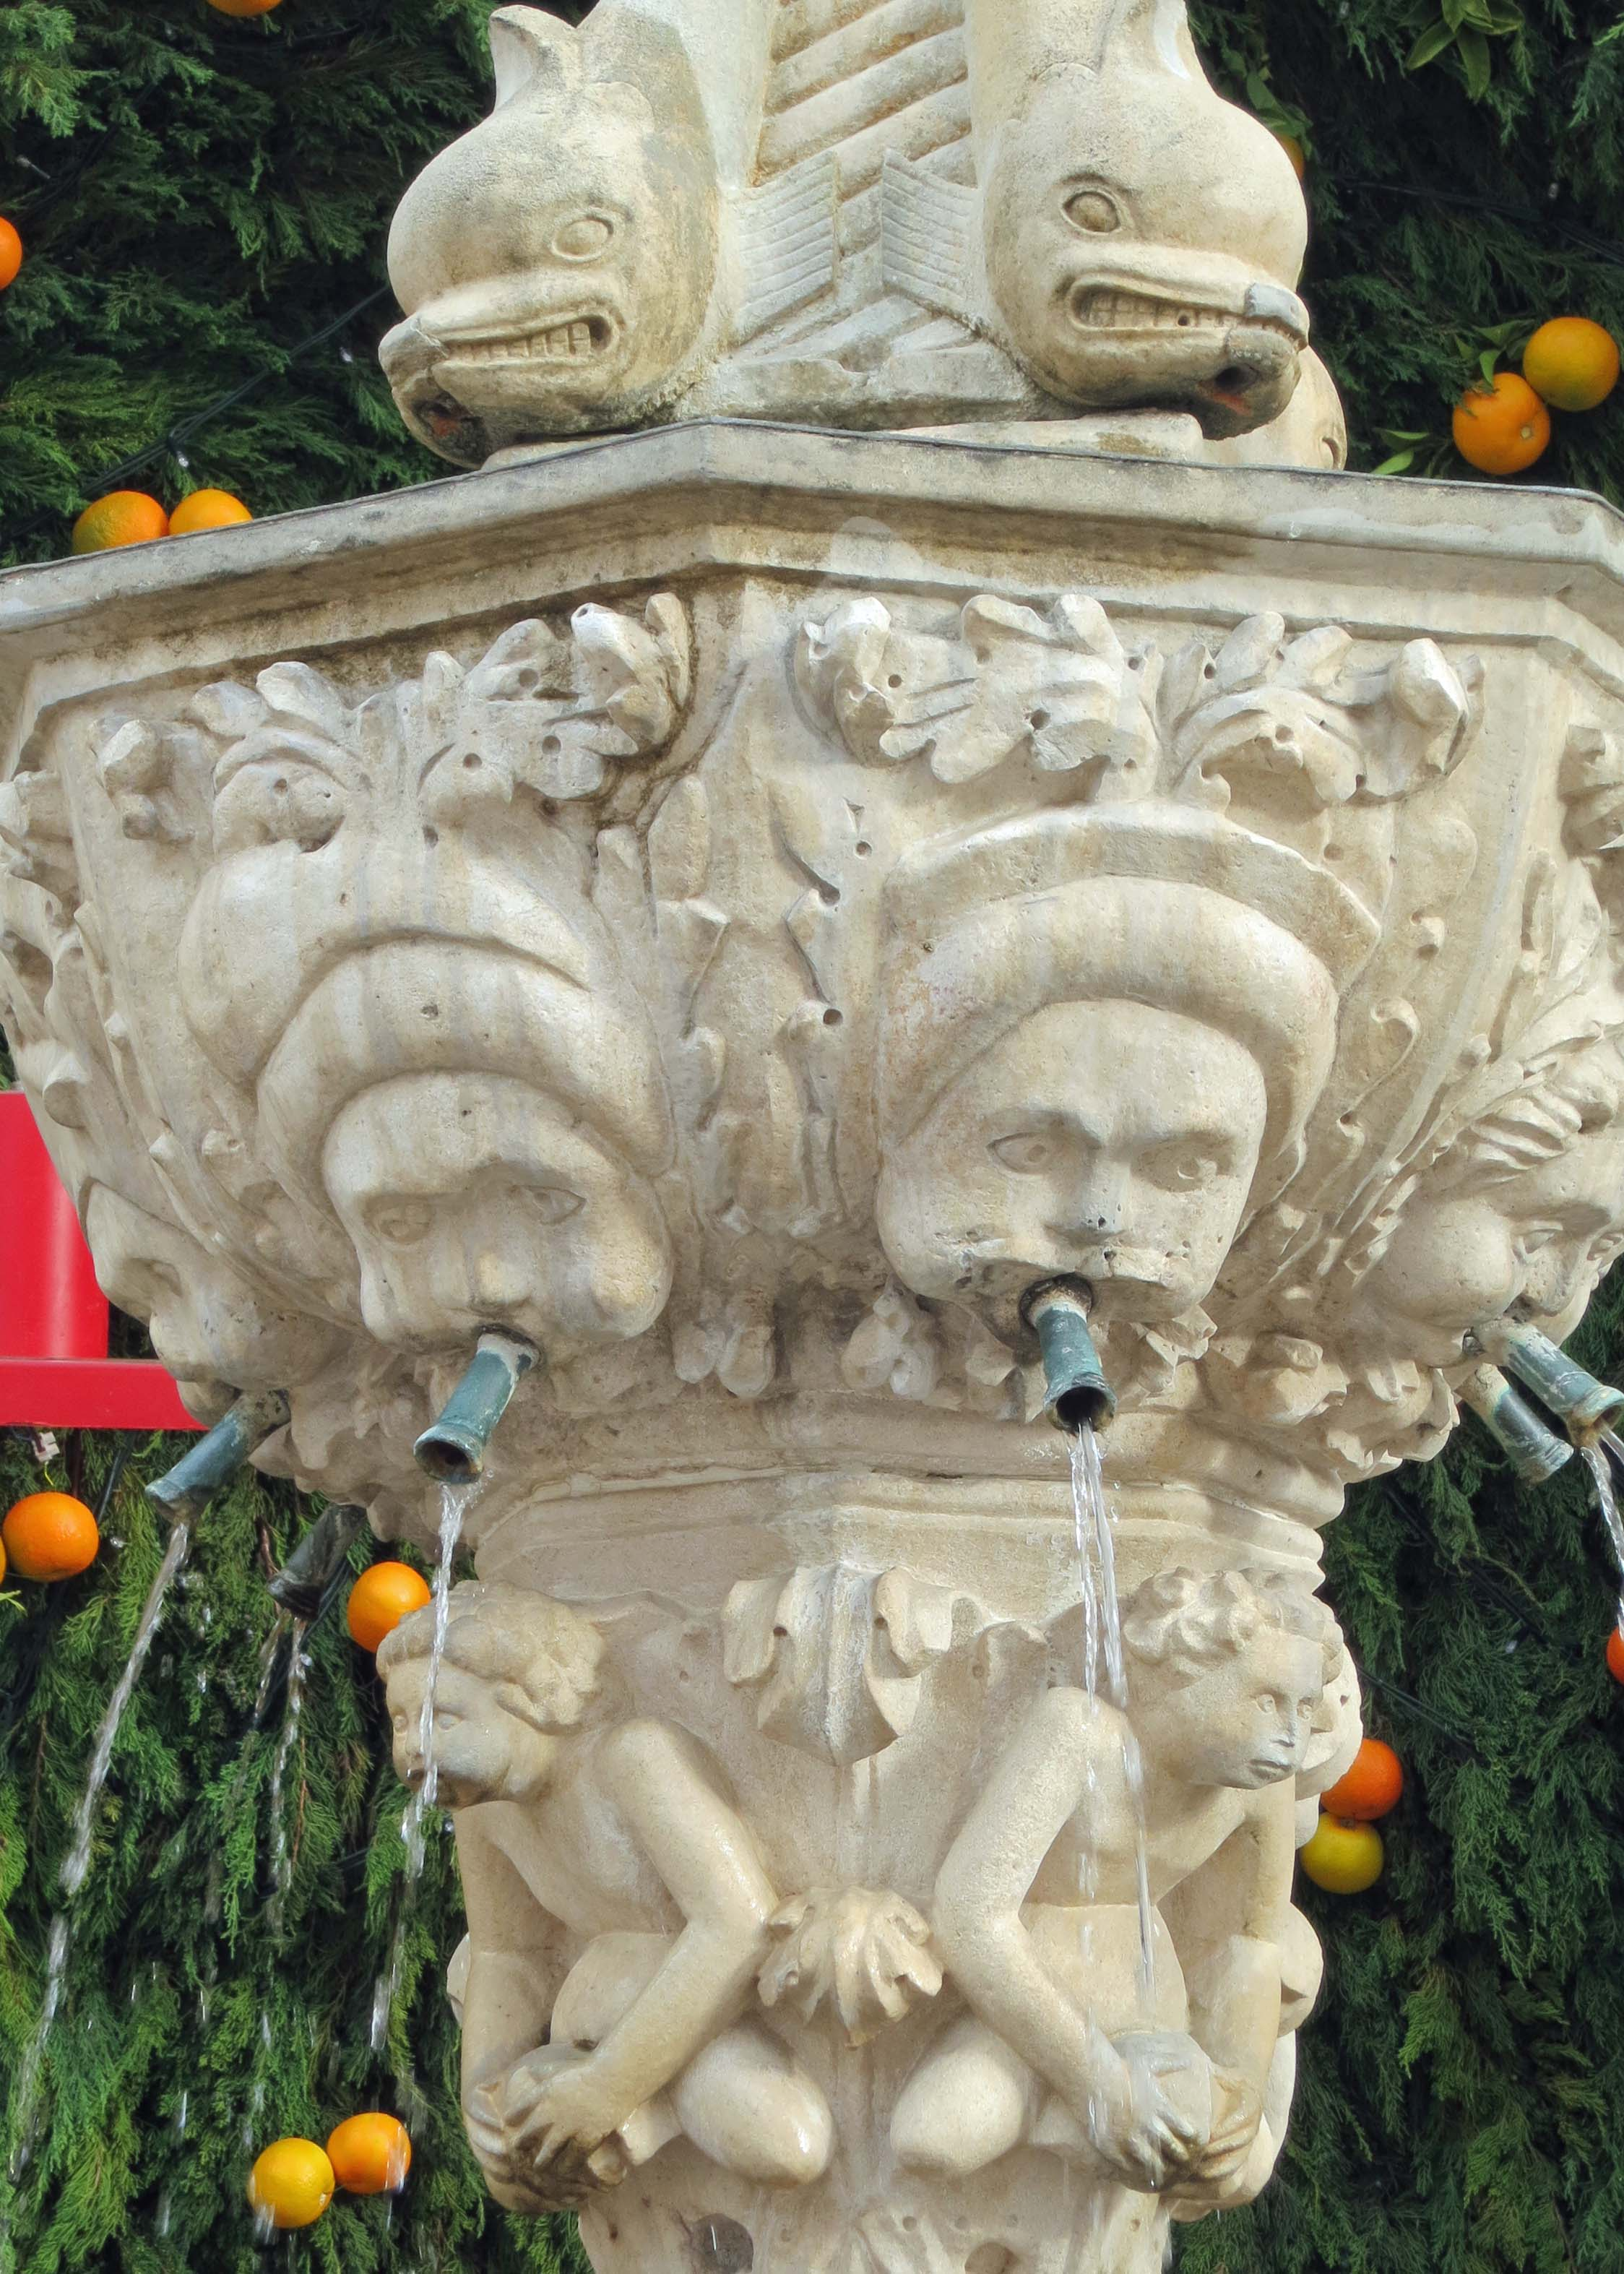 Another view of Little Onofrio's Fountain.